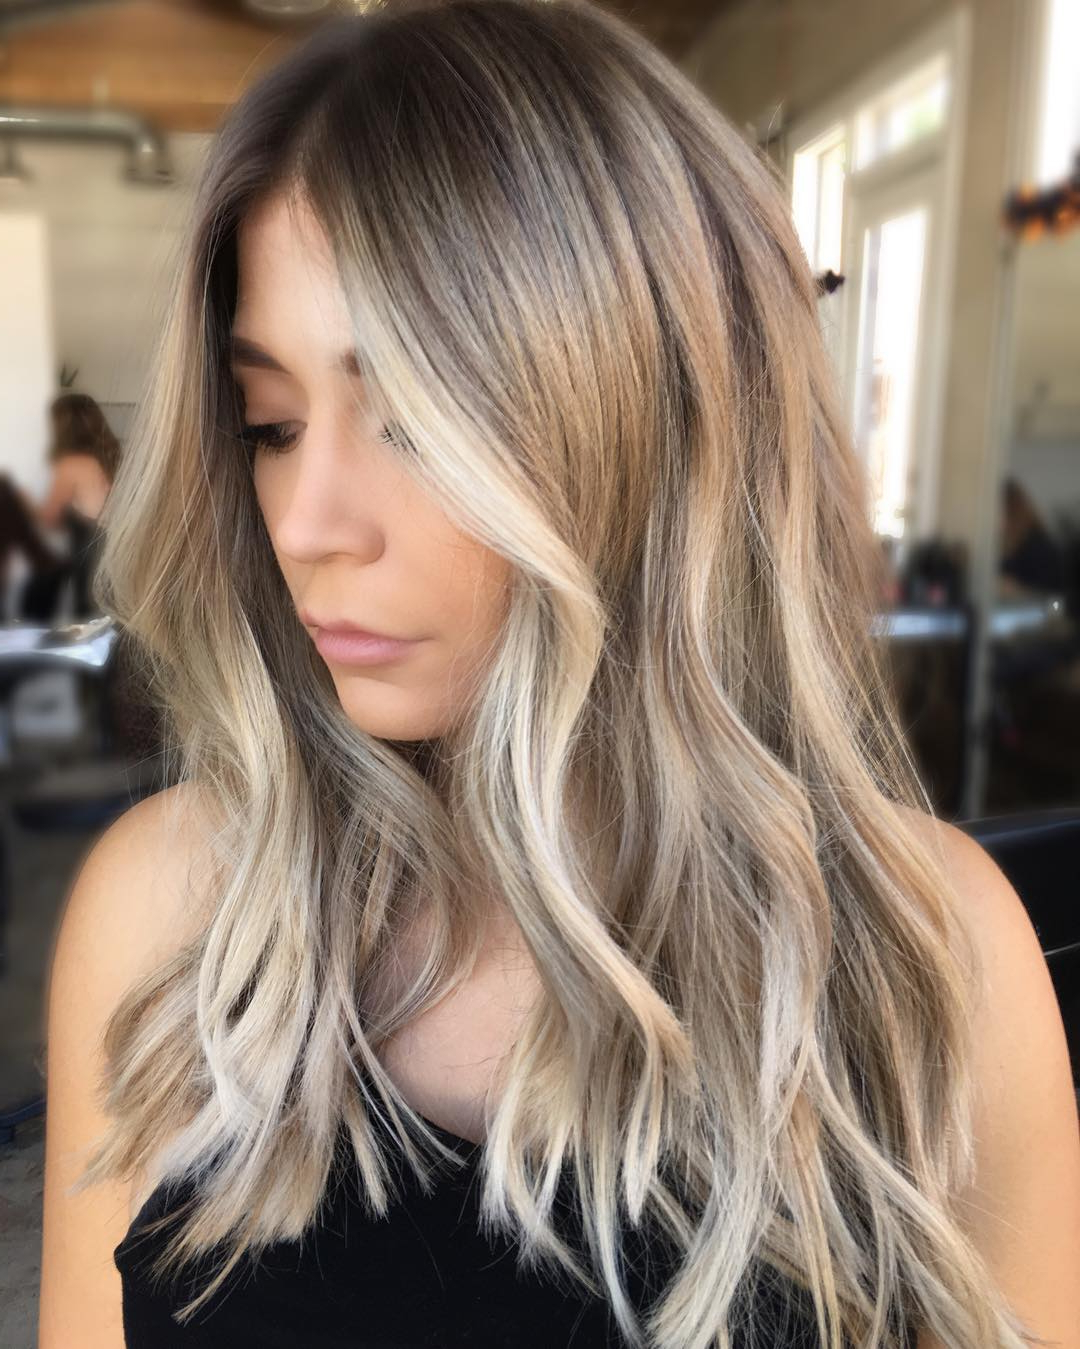 10 Ash Blonde Hairstyles For All Skin Tones 2020 For Most Popular Delicate Light Blonde Shag Haircuts (Gallery 9 of 20)